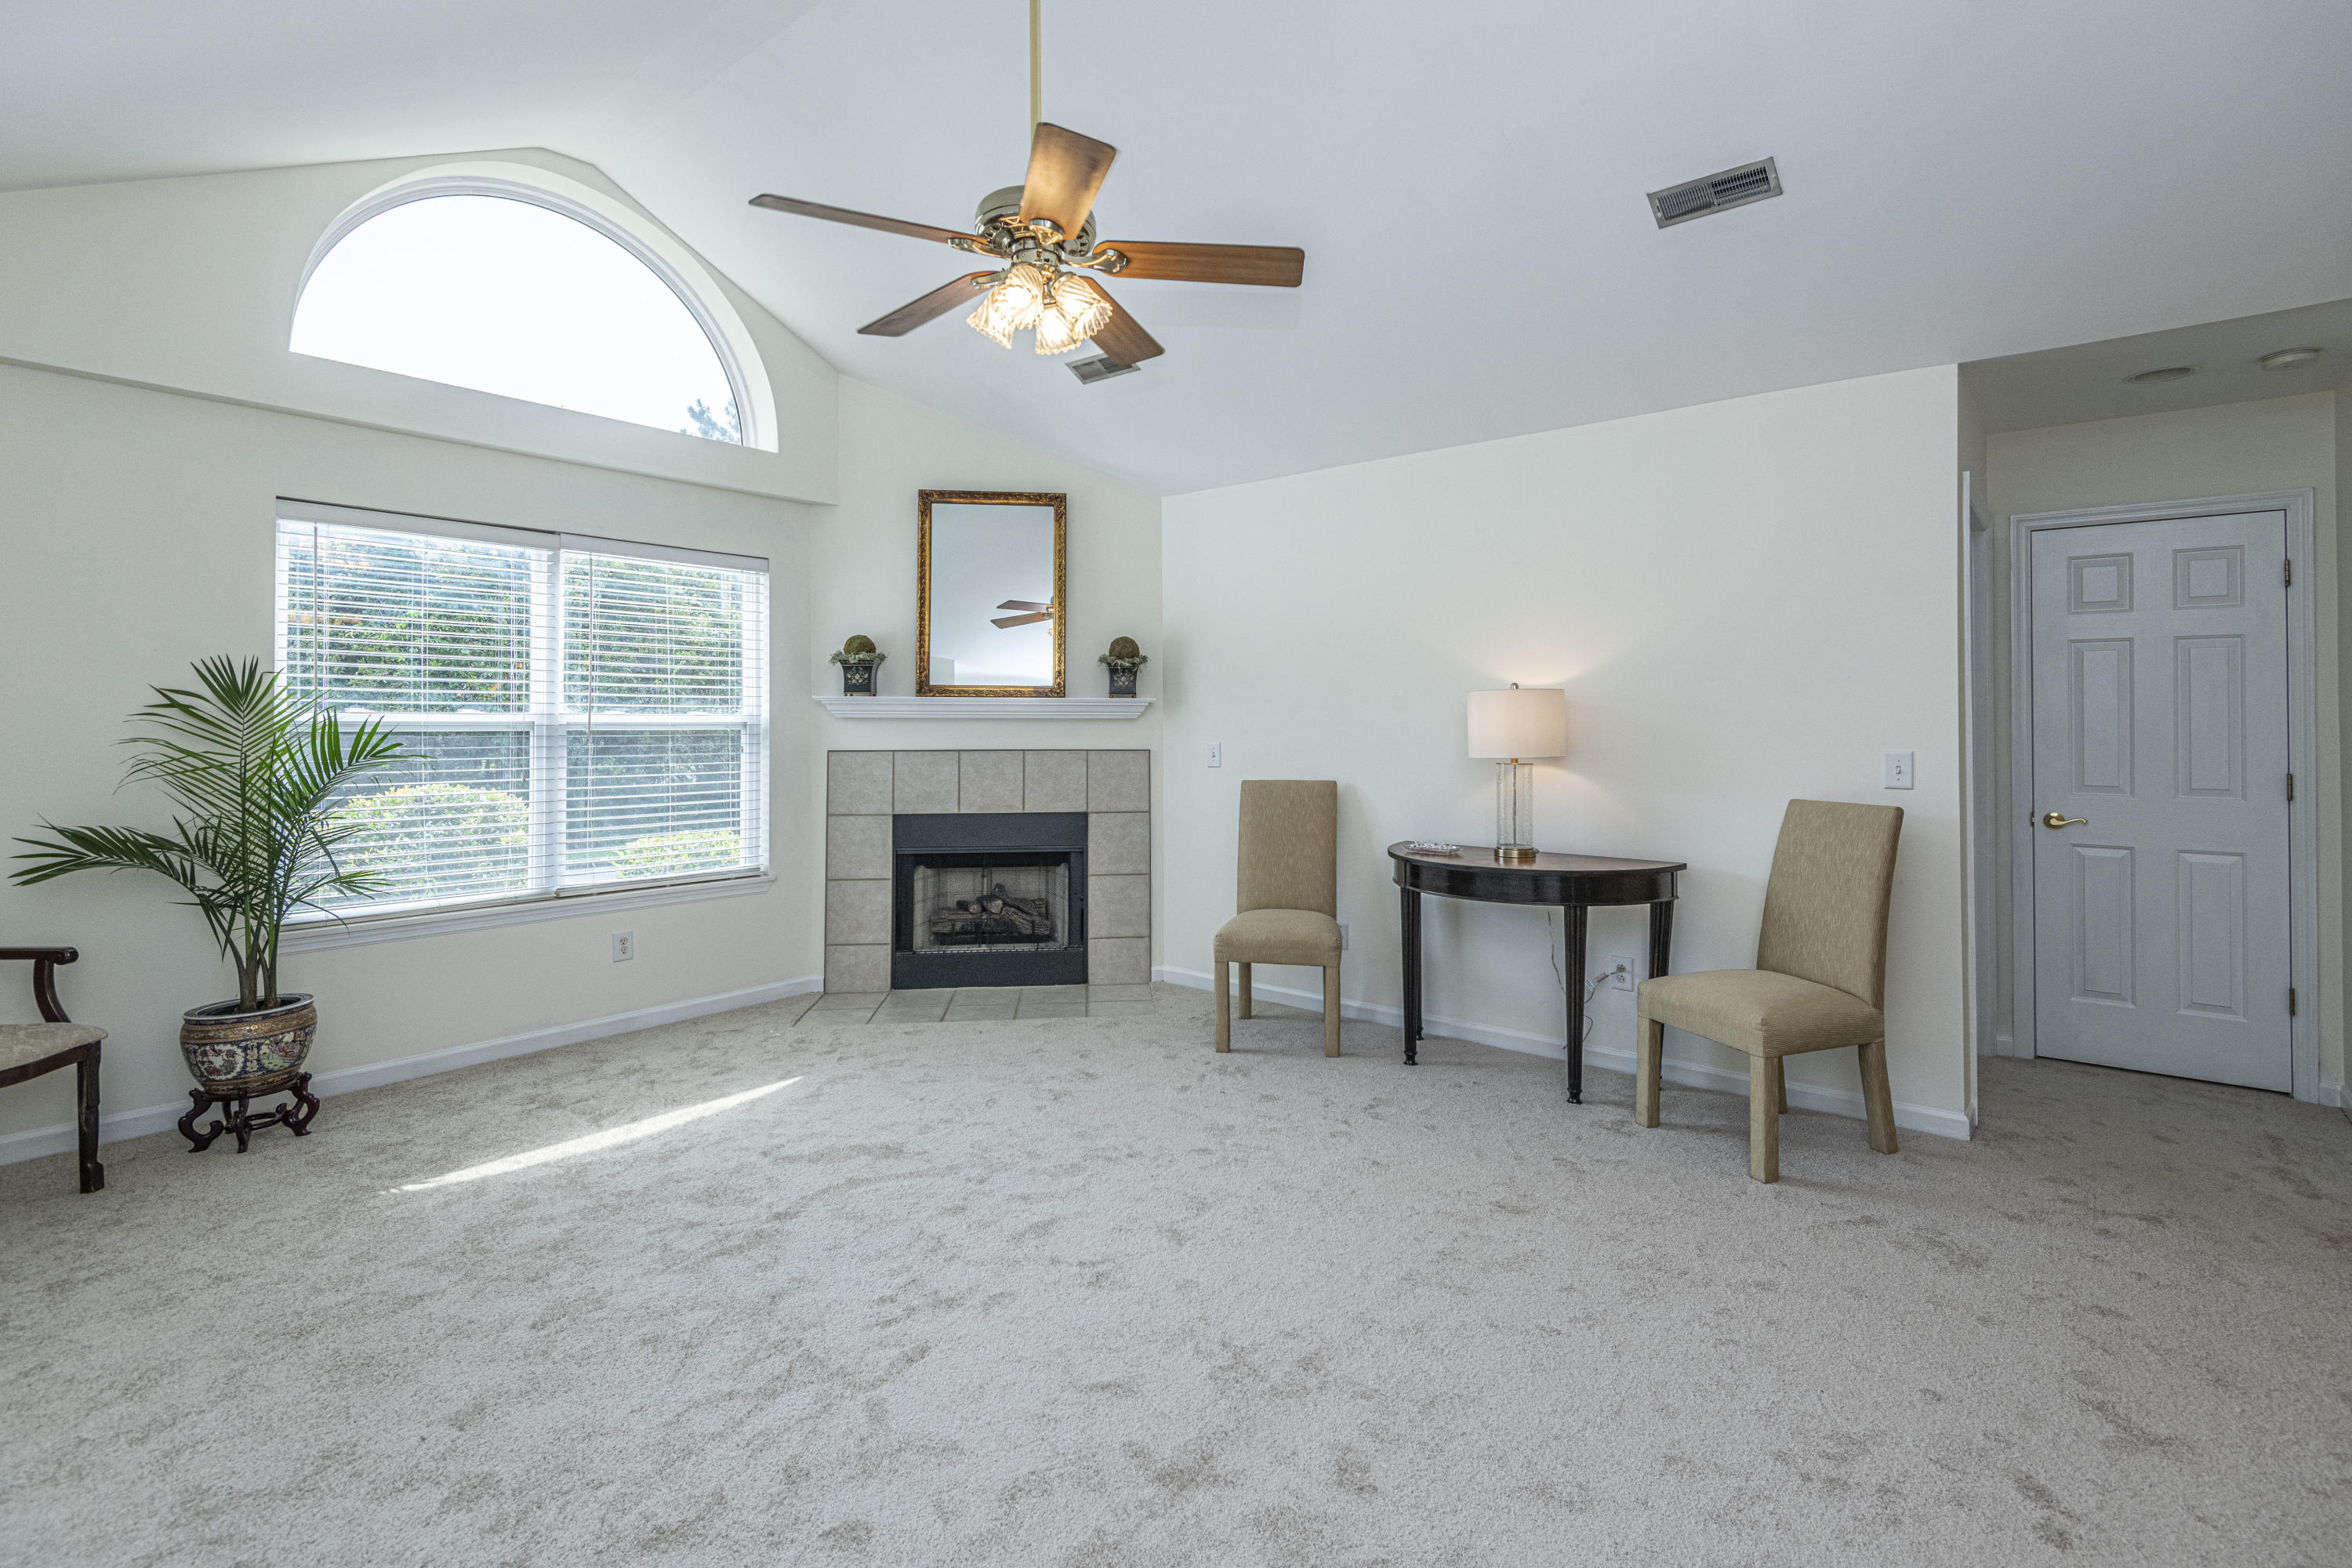 Village at West Ashley Homes For Sale - 3524 Mary Ader, Charleston, SC - 14